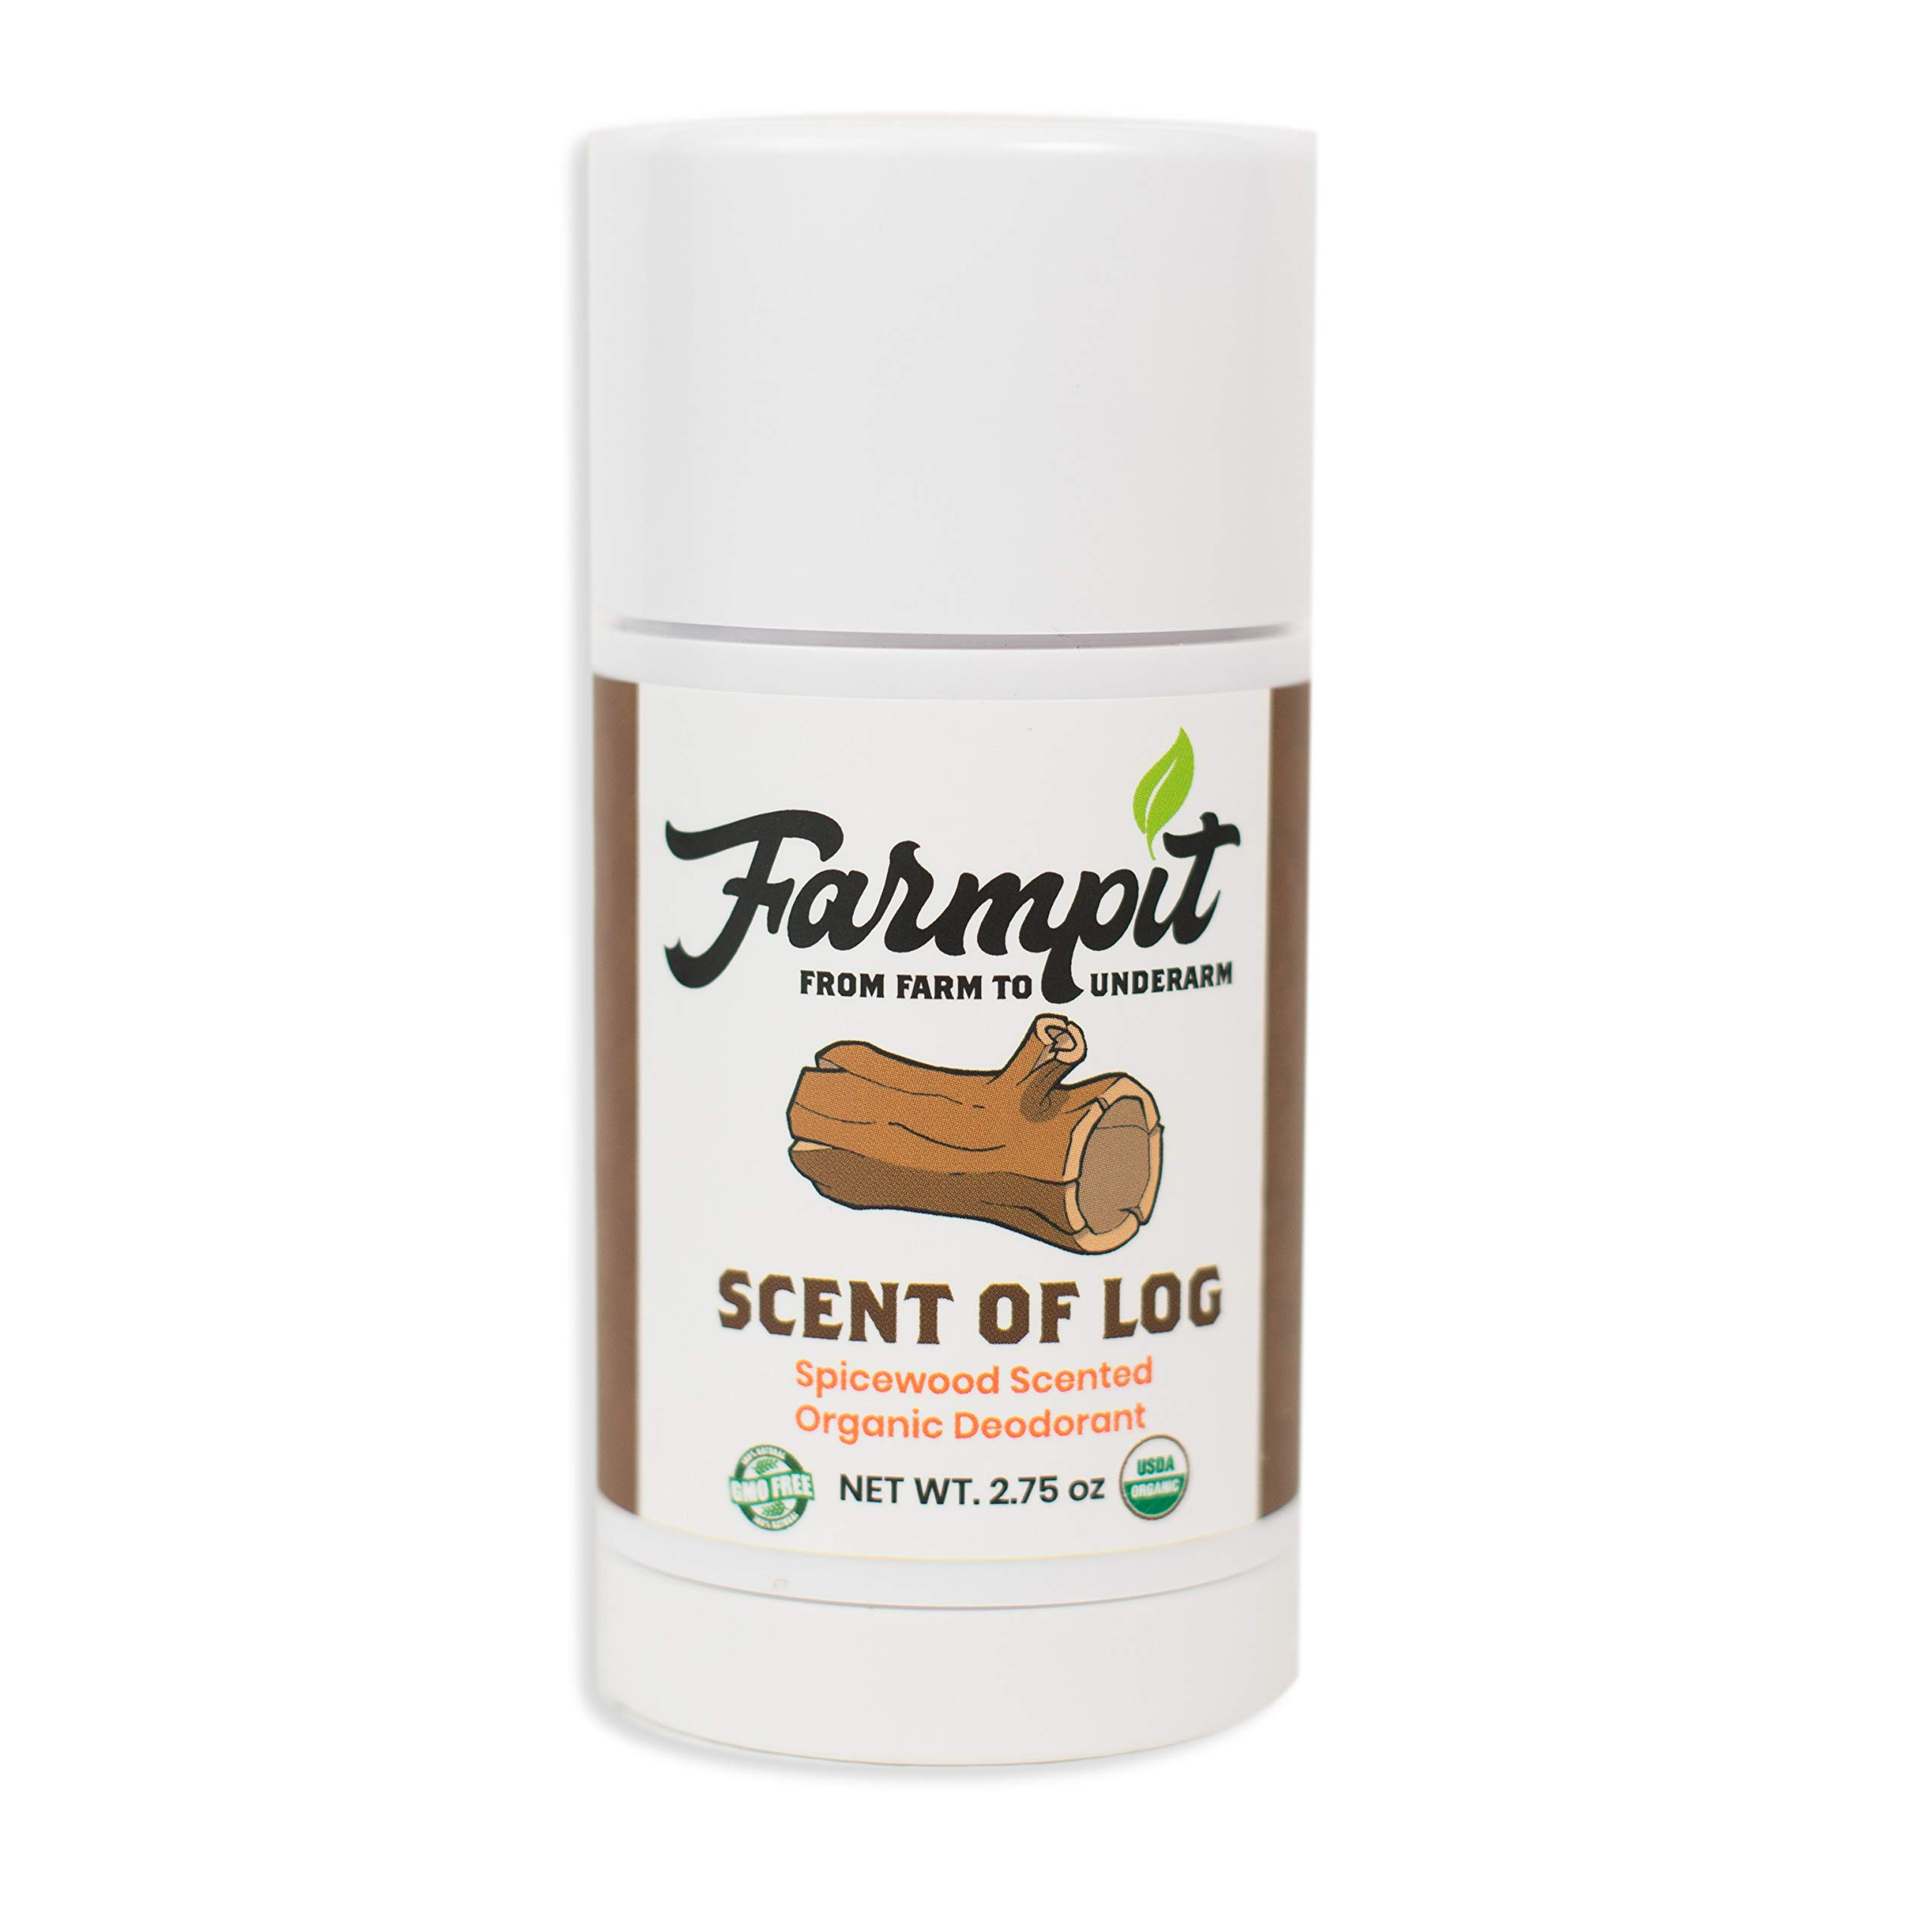 Farmpit All Natural Deodorant - USDA Certified Organic - Aluminum, Paraben, Propylene, Gluten, Cruelty and Baking Soda Free - for Men or Women - Stay Fresh All Day (Scent of Log)